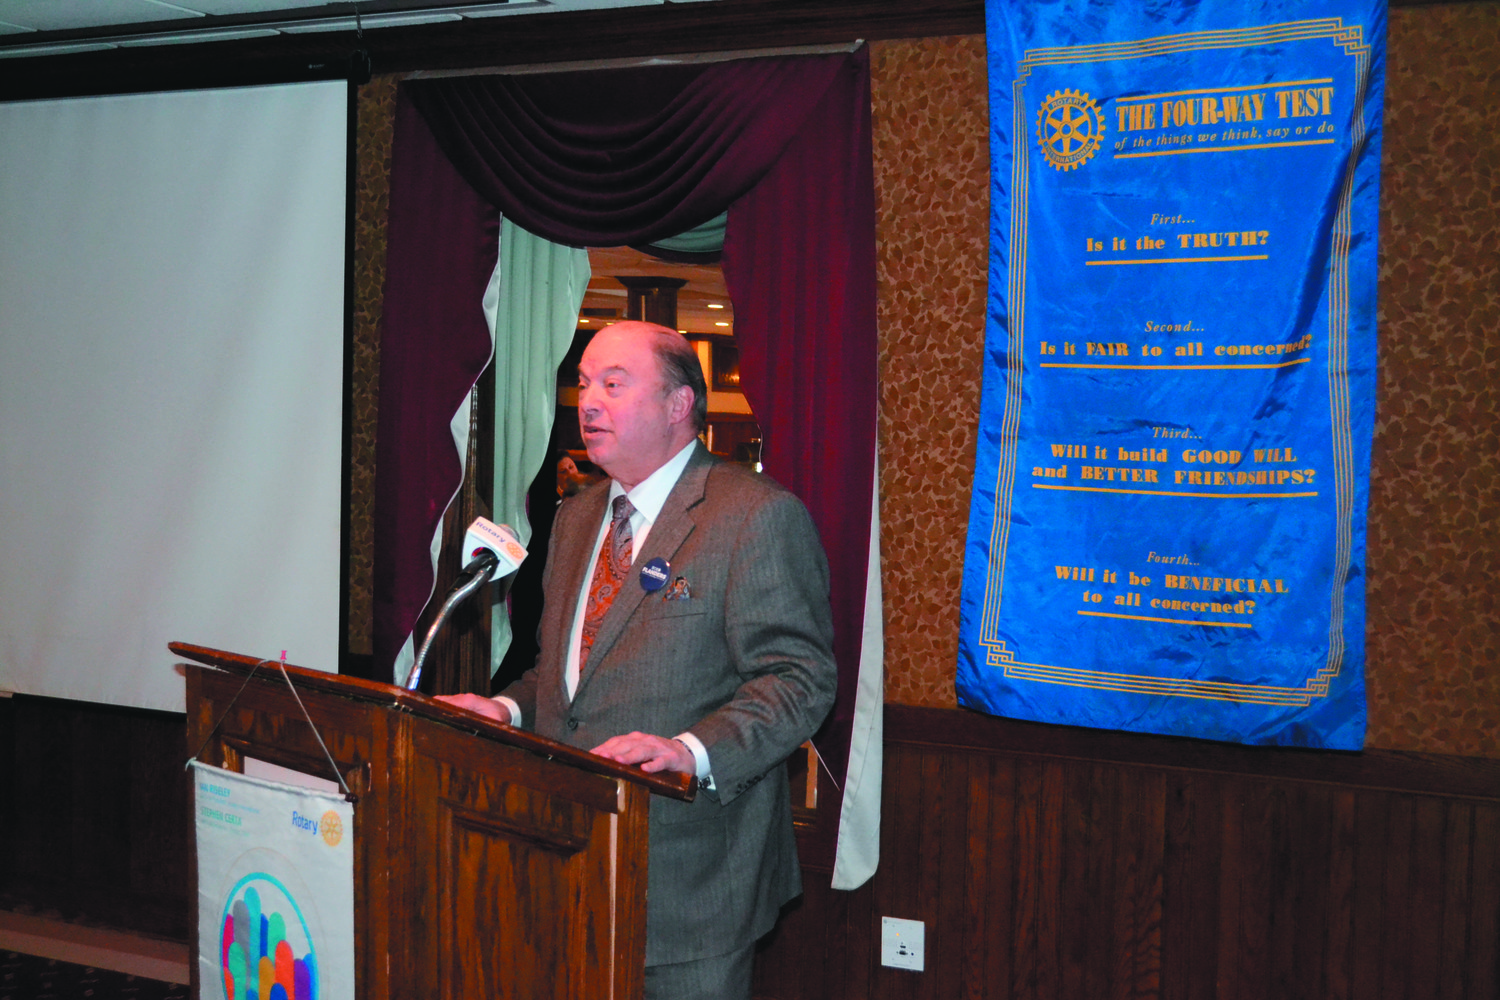 STRAIGHT TALK: Bob Flanders delivered a soft-spoken but targeted speech on Thursday afternoon at Chelo's to a full room of Warwick Rotarians.